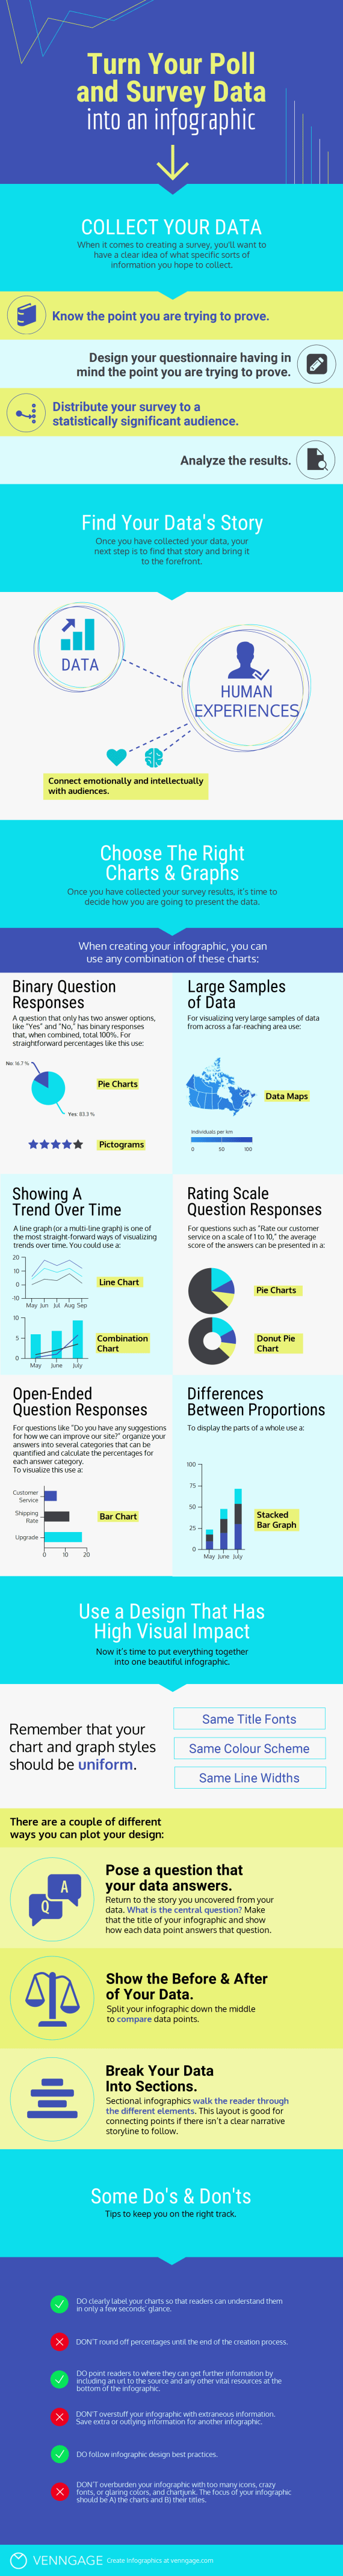 turn your poll and survey data into an infographic | How to Use Infographics to Make Cool Slideshare & Powerpoint Templates